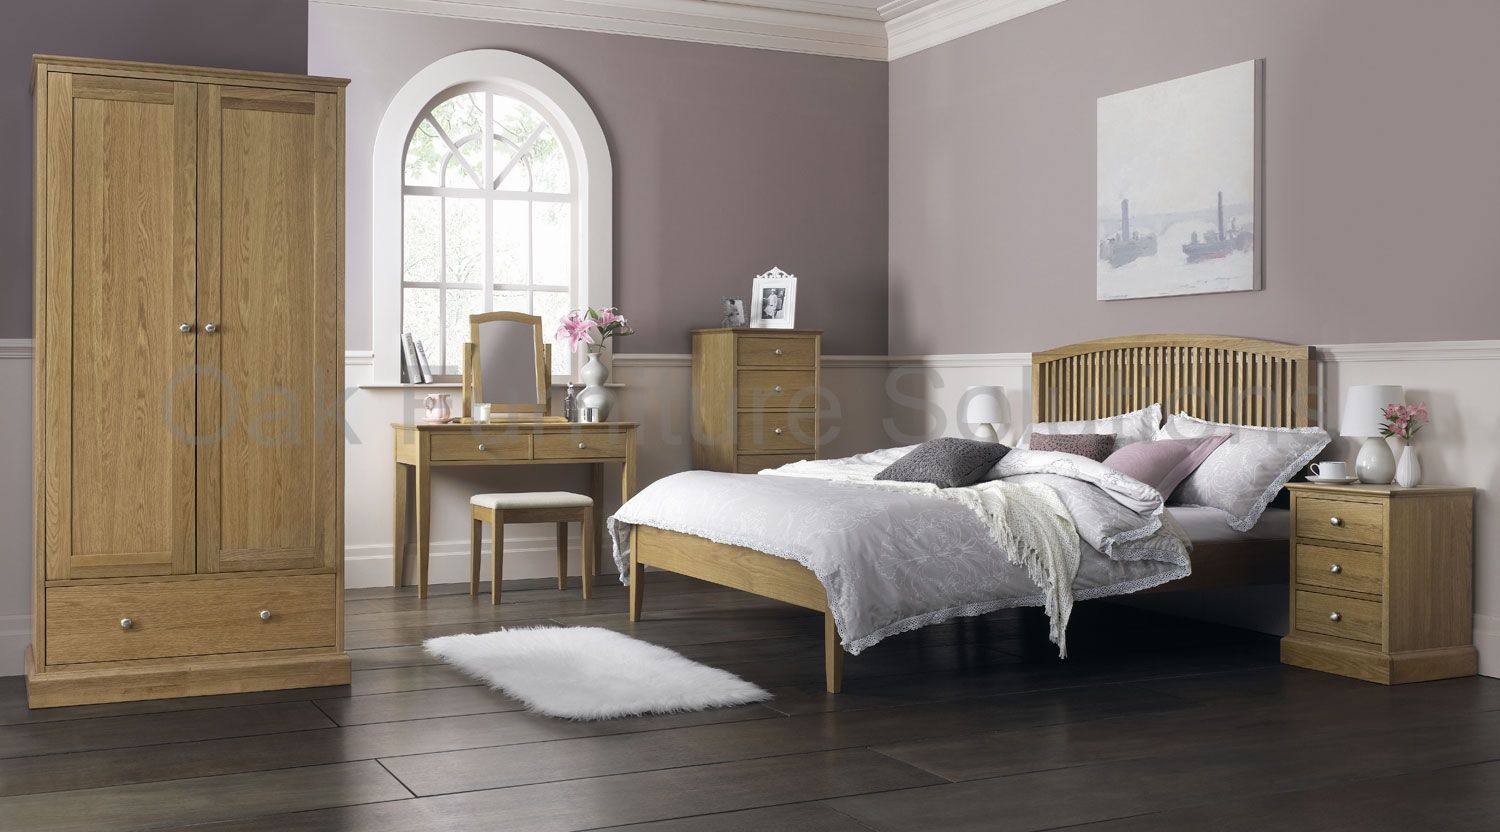 oak furniture light oak bedroom set Oak bedroom furniture